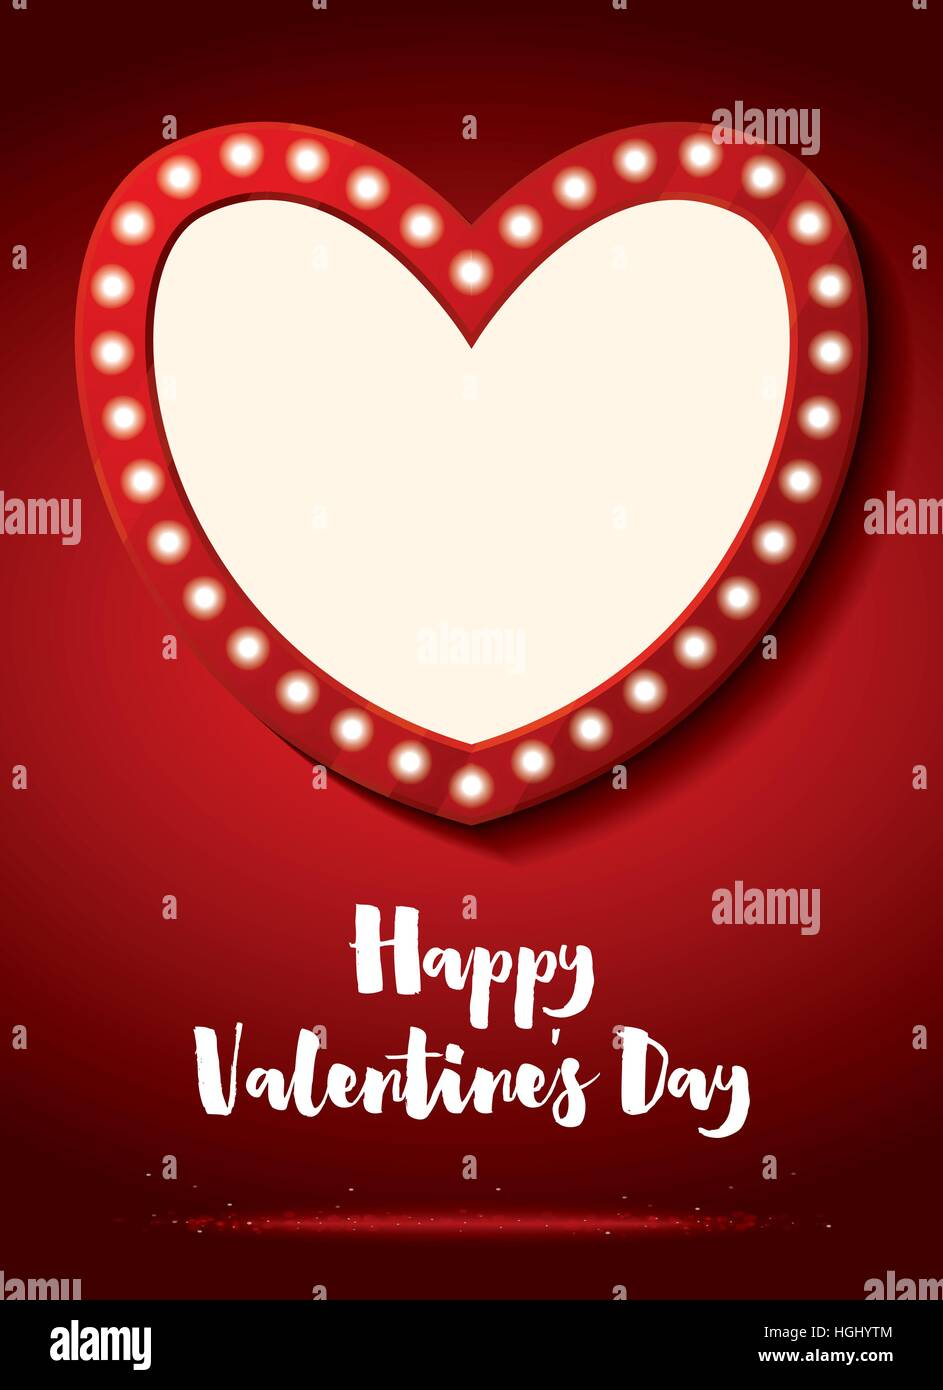 Happy Valentines Day Greeting Card Empty Heart Vector Stock